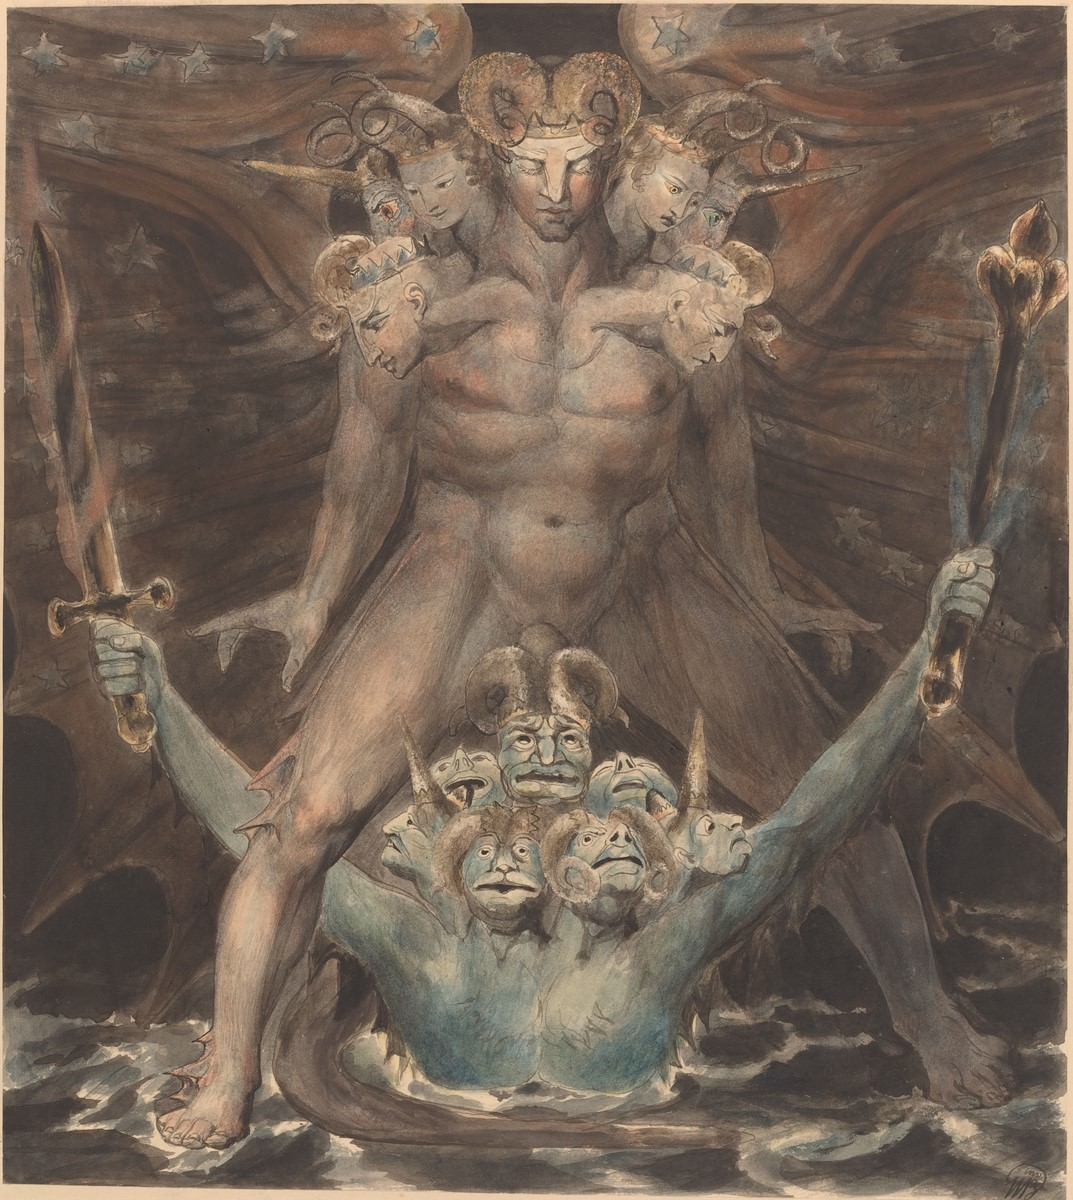 The Great Red Dragon and the Beast from the Sea, 1805. William Blake. National Gallery of Art, Washington. Rosenwald Collection.